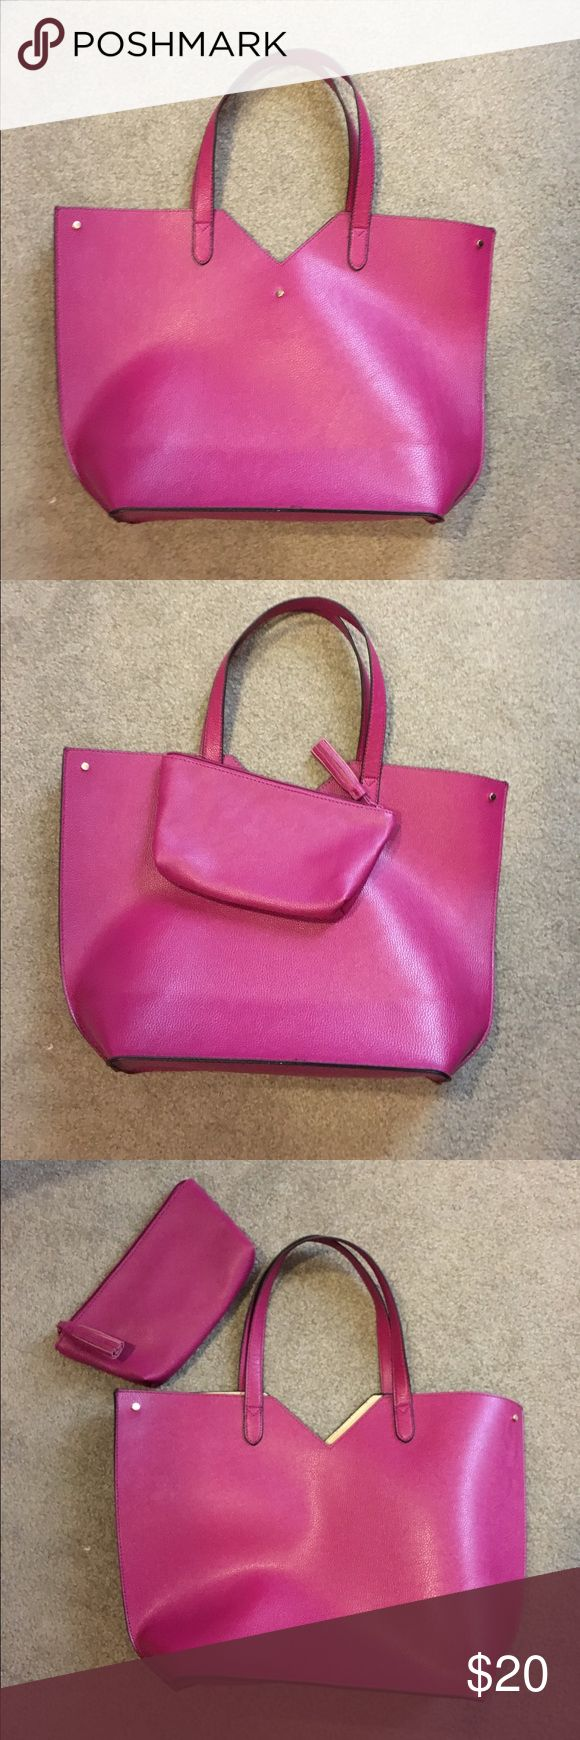 Neiman Marcus Tote & Clutch This bright pink tote bag and zippered clutch look great in the city, on the town, or taken to the beach. Neiman Marcus Bags Totes